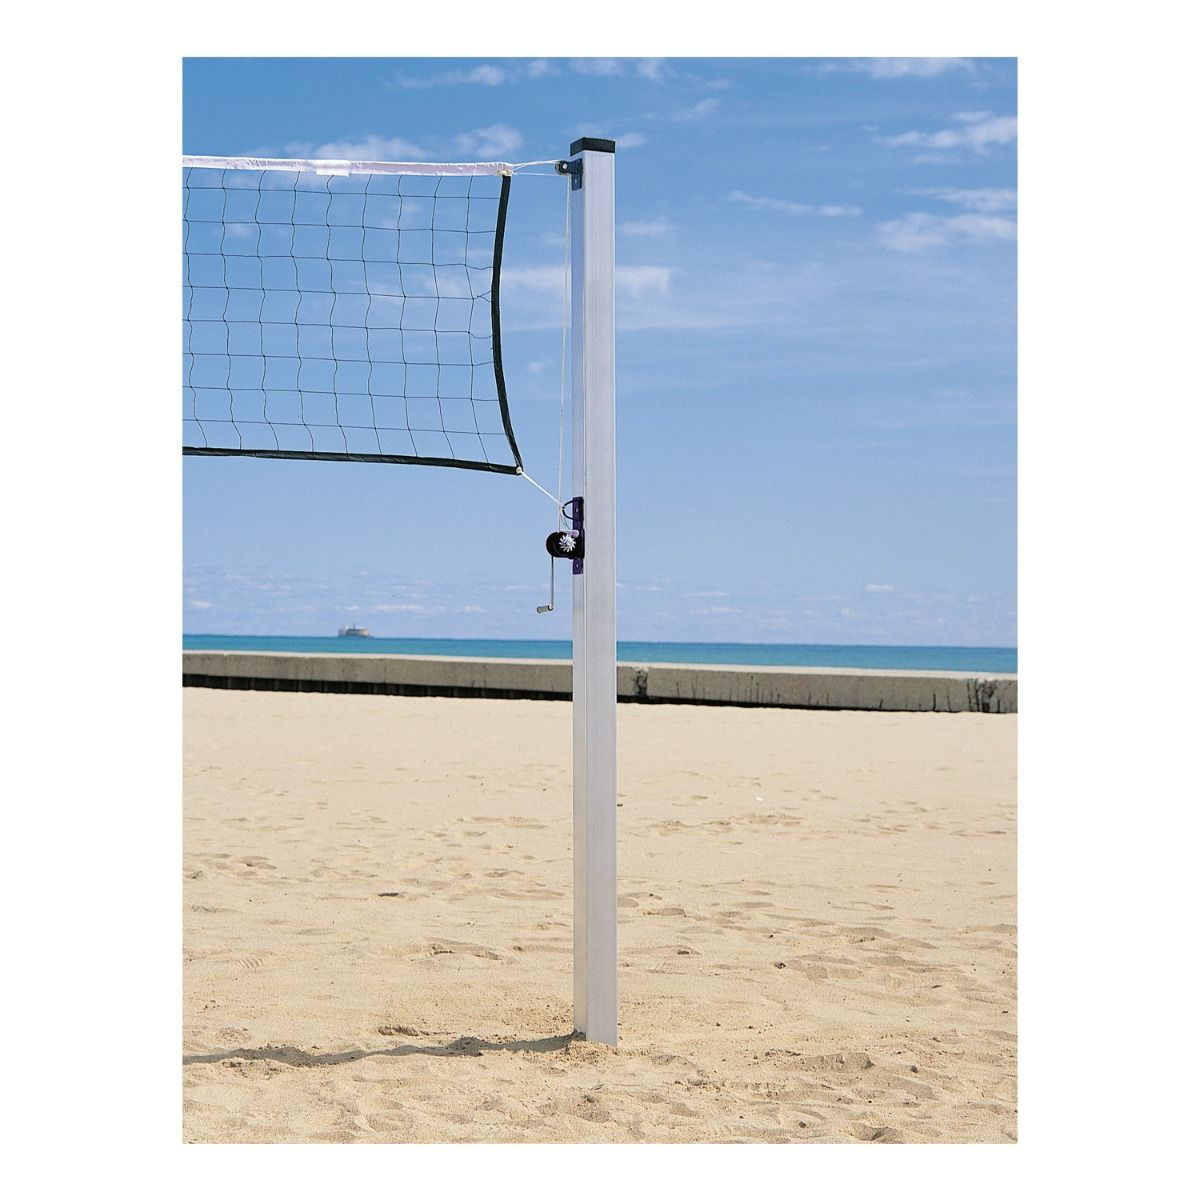 27ft 10in X 3ft 3in Sand Volleyball Net